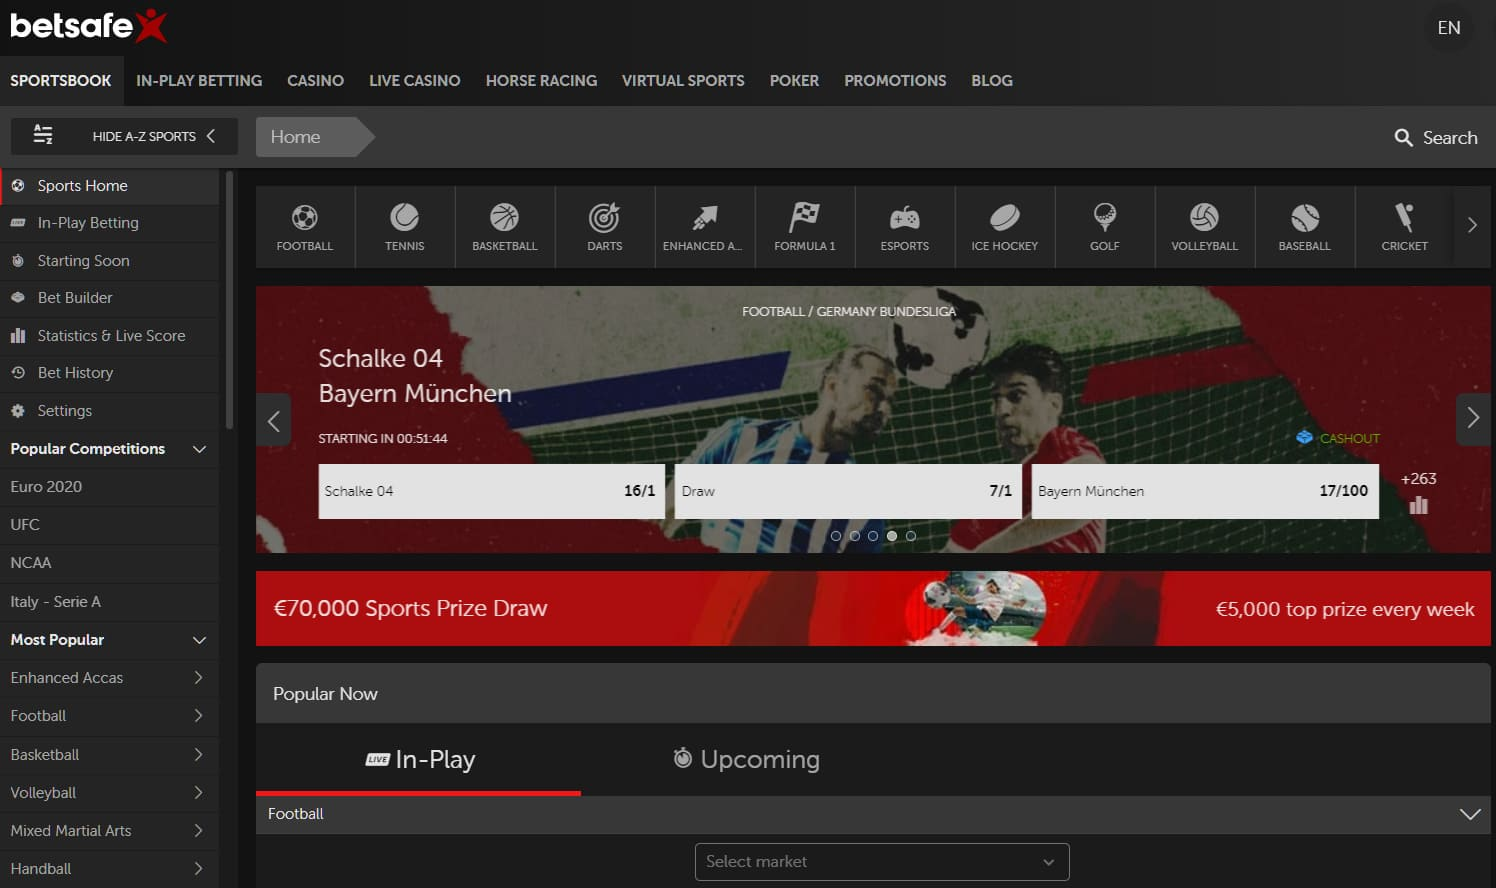 Betsafe's Sportsbook With All Sports Betting Options Live and In-play